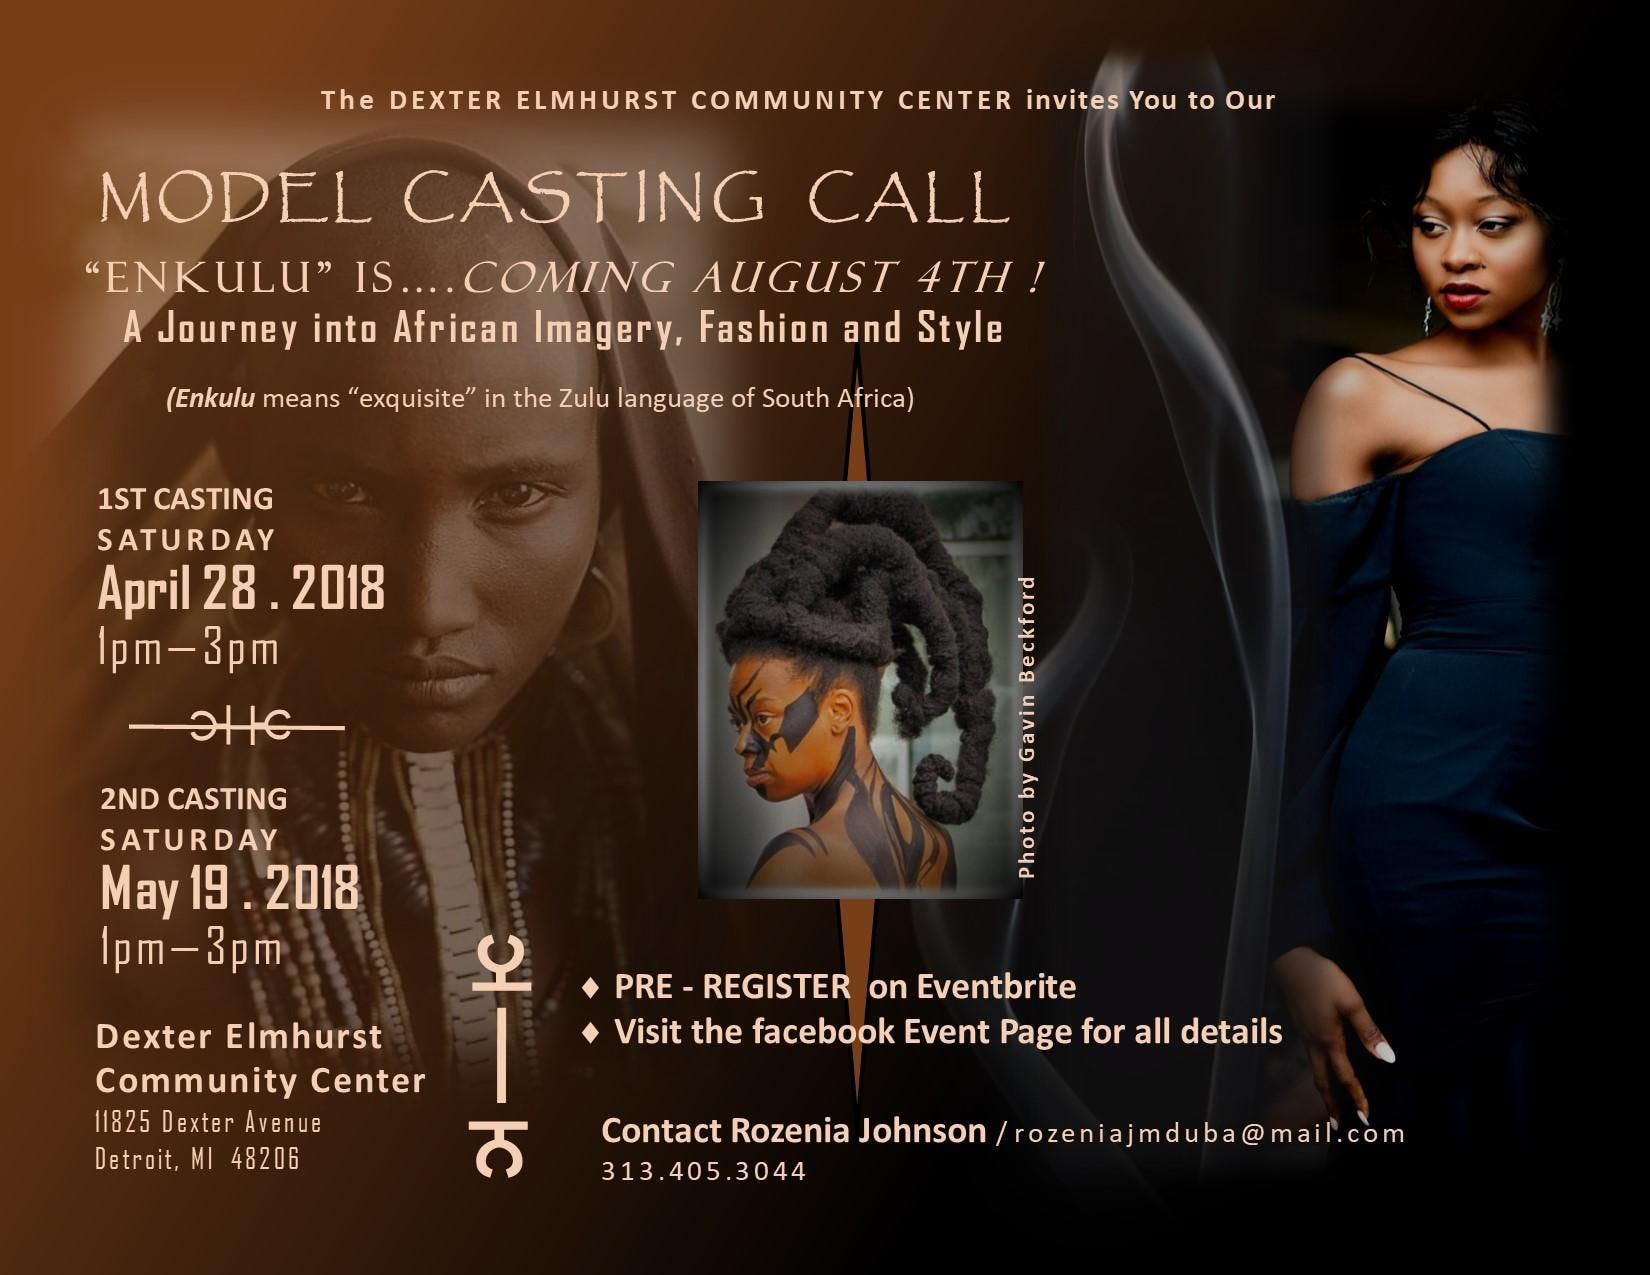 Model Casting Call/ENKULU Journey into African Imagery